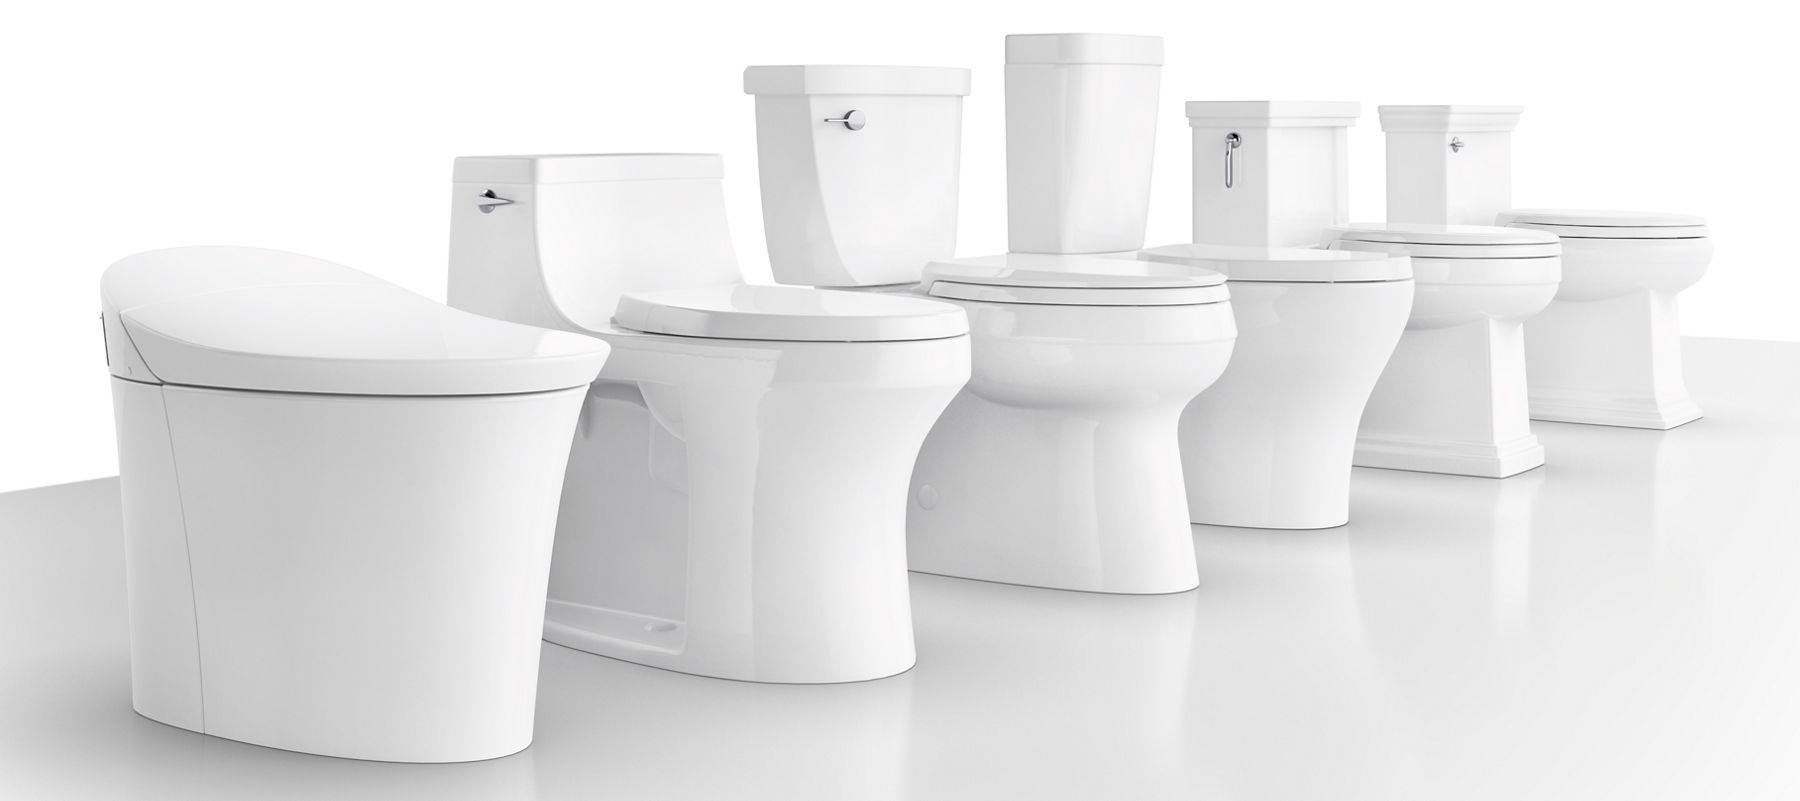 6 toilets line up, all different styles/options